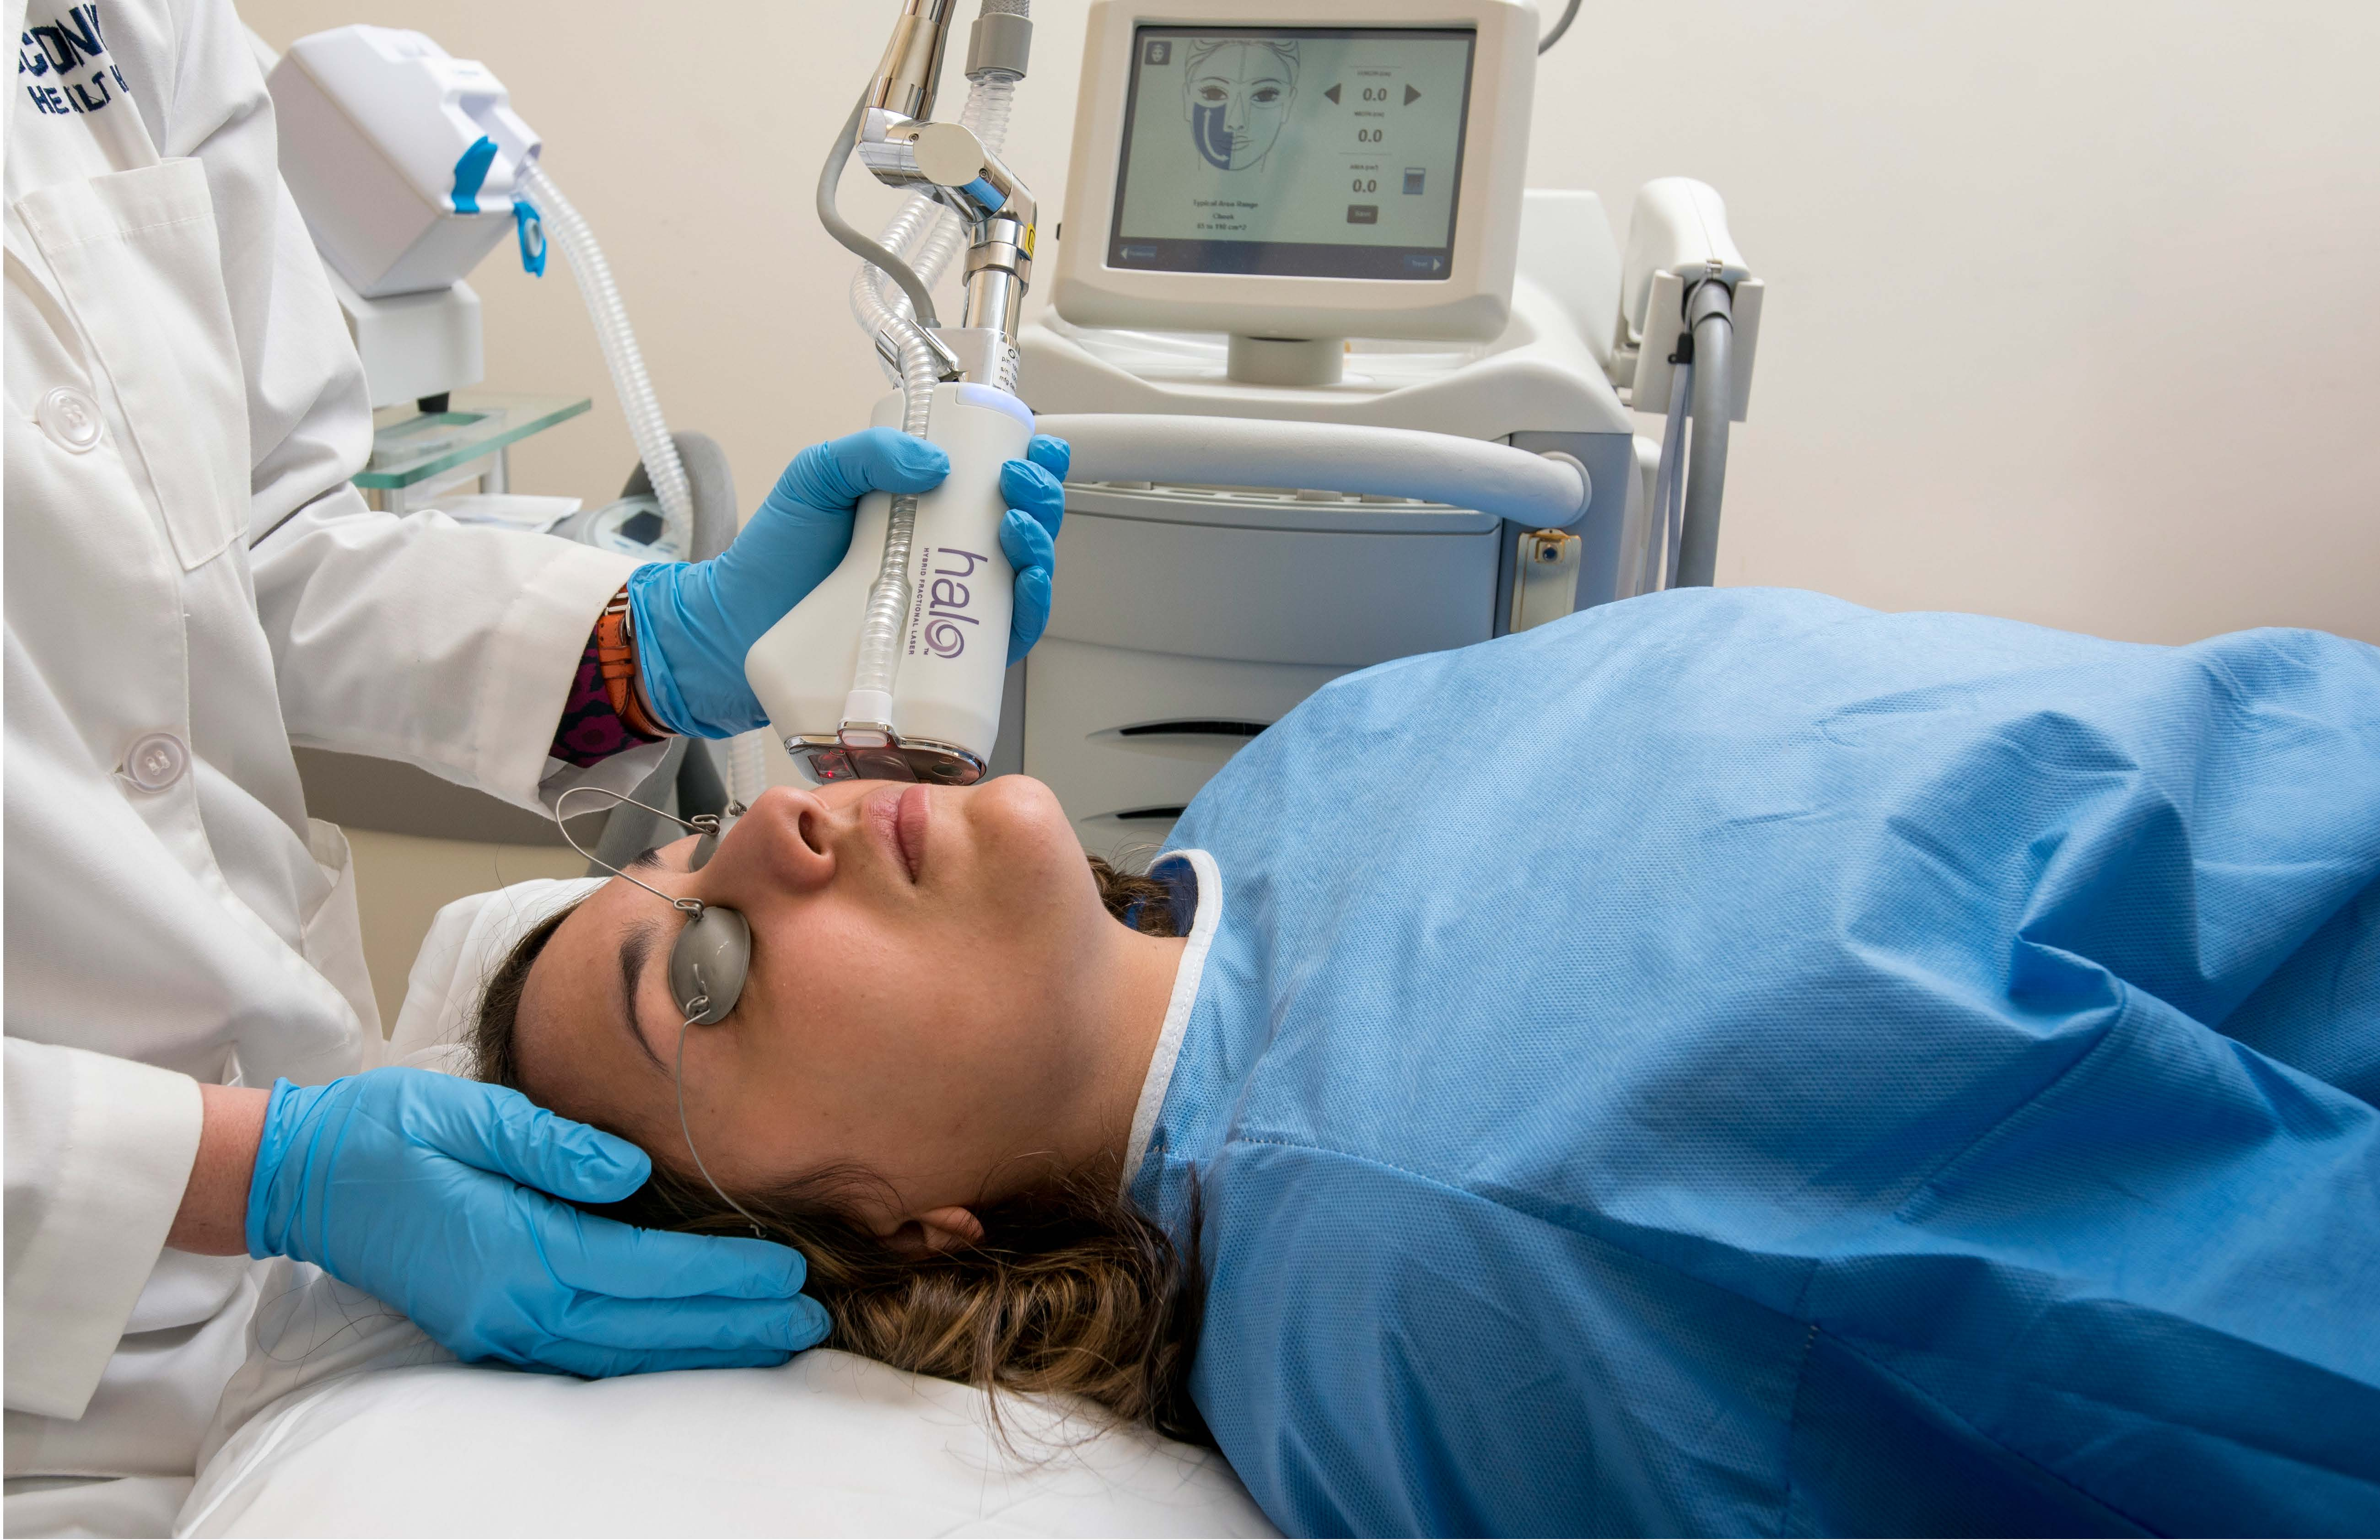 Patient undergoing cosmetic laser surgery